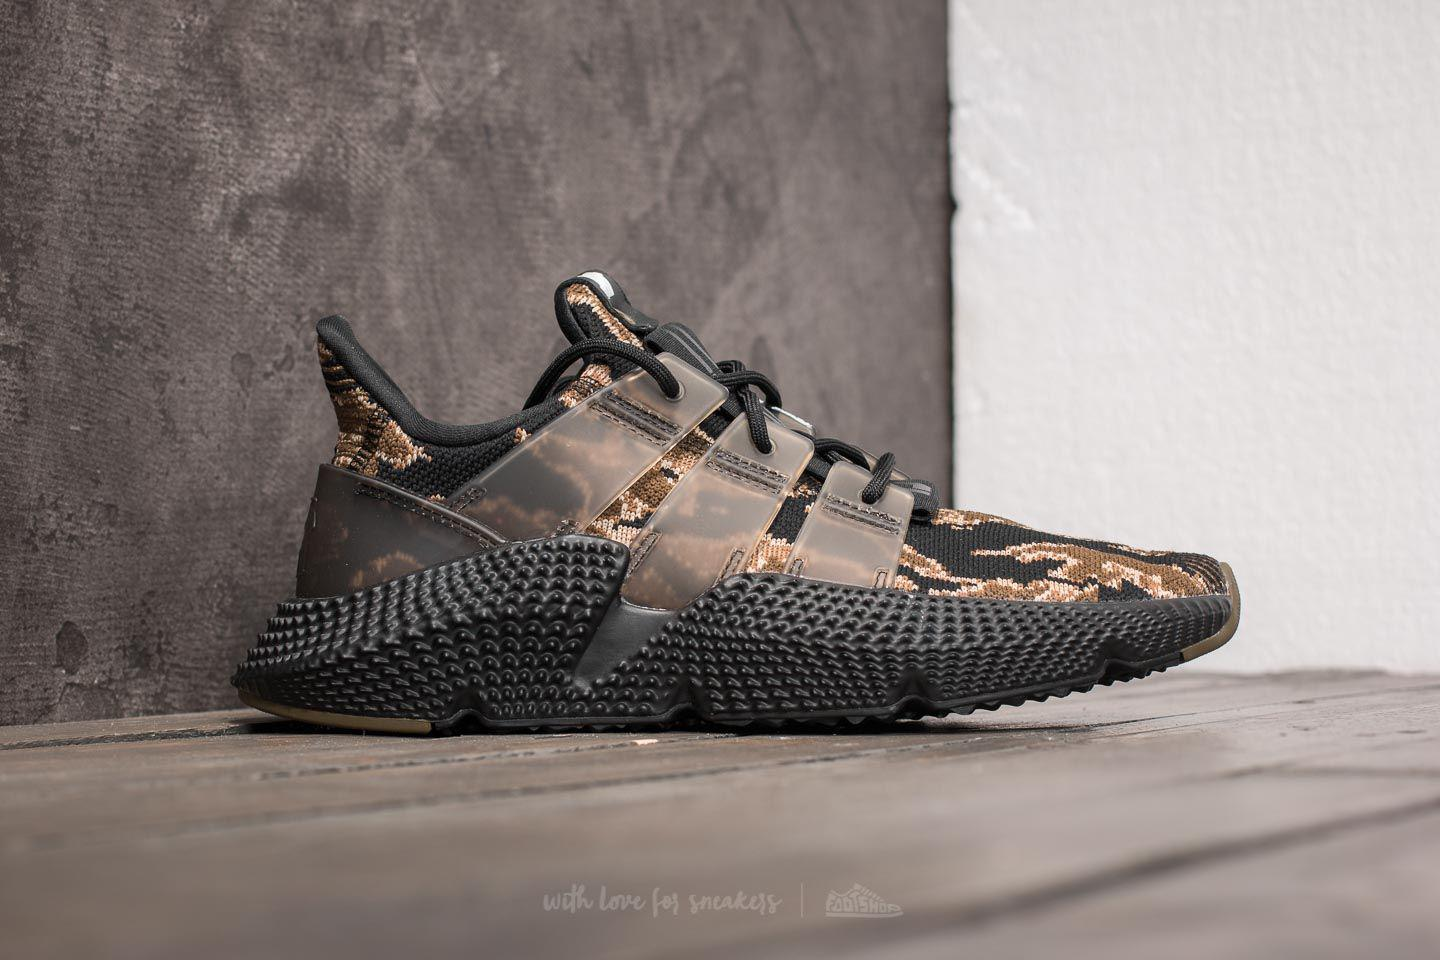 9a758312ac15a Footshop Adidas Consortium X Undefeated Prophere Core Black/ Trace ...